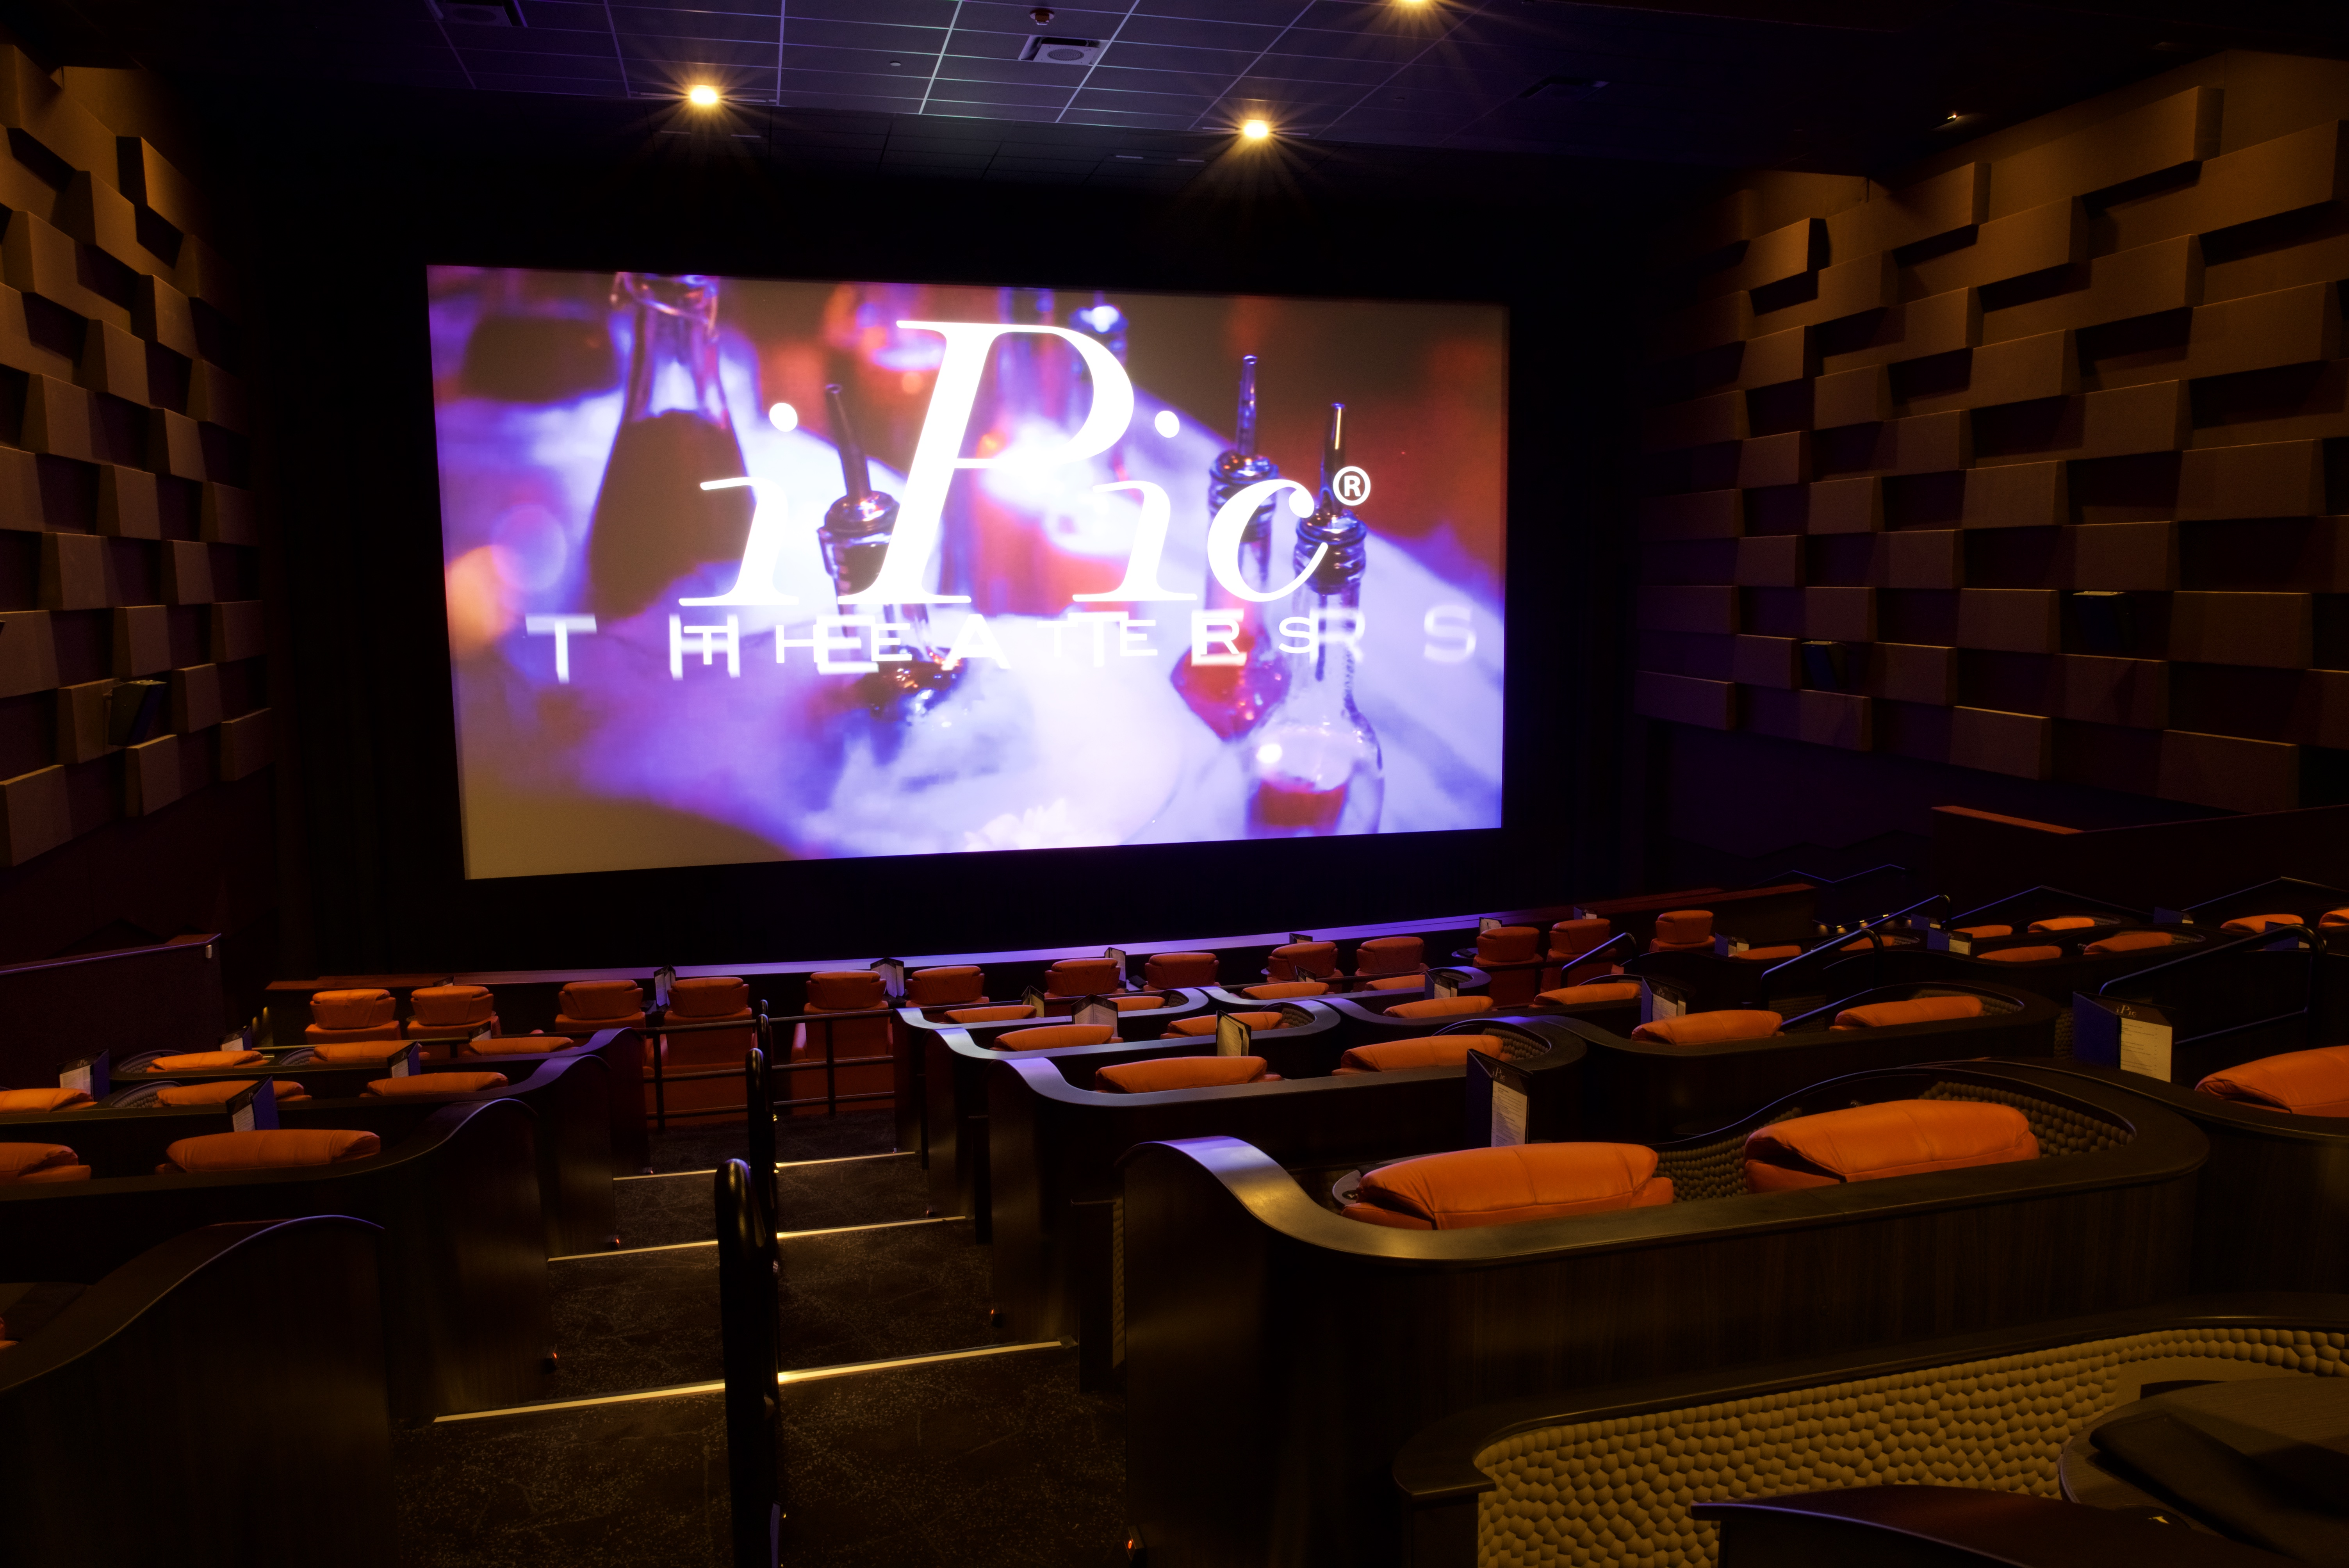 large theatre chairs chair full gorgeous island recliner reclining denver in size of mumbai theater long movie